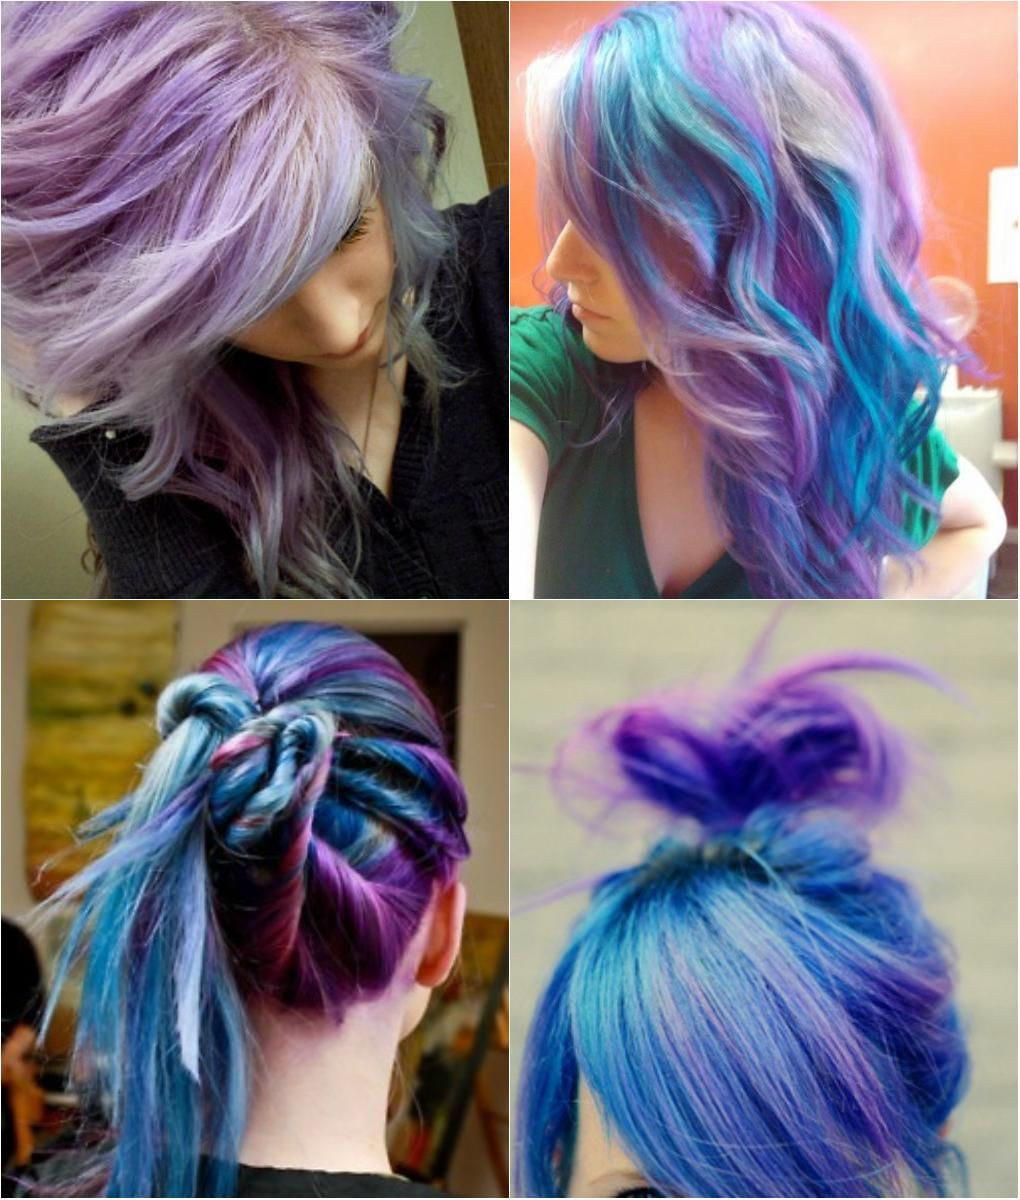 Best ideas about DIY Blue Hair Dye . Save or Pin Hair tips and ideas DIY Color Hair Blue and Violet Now.